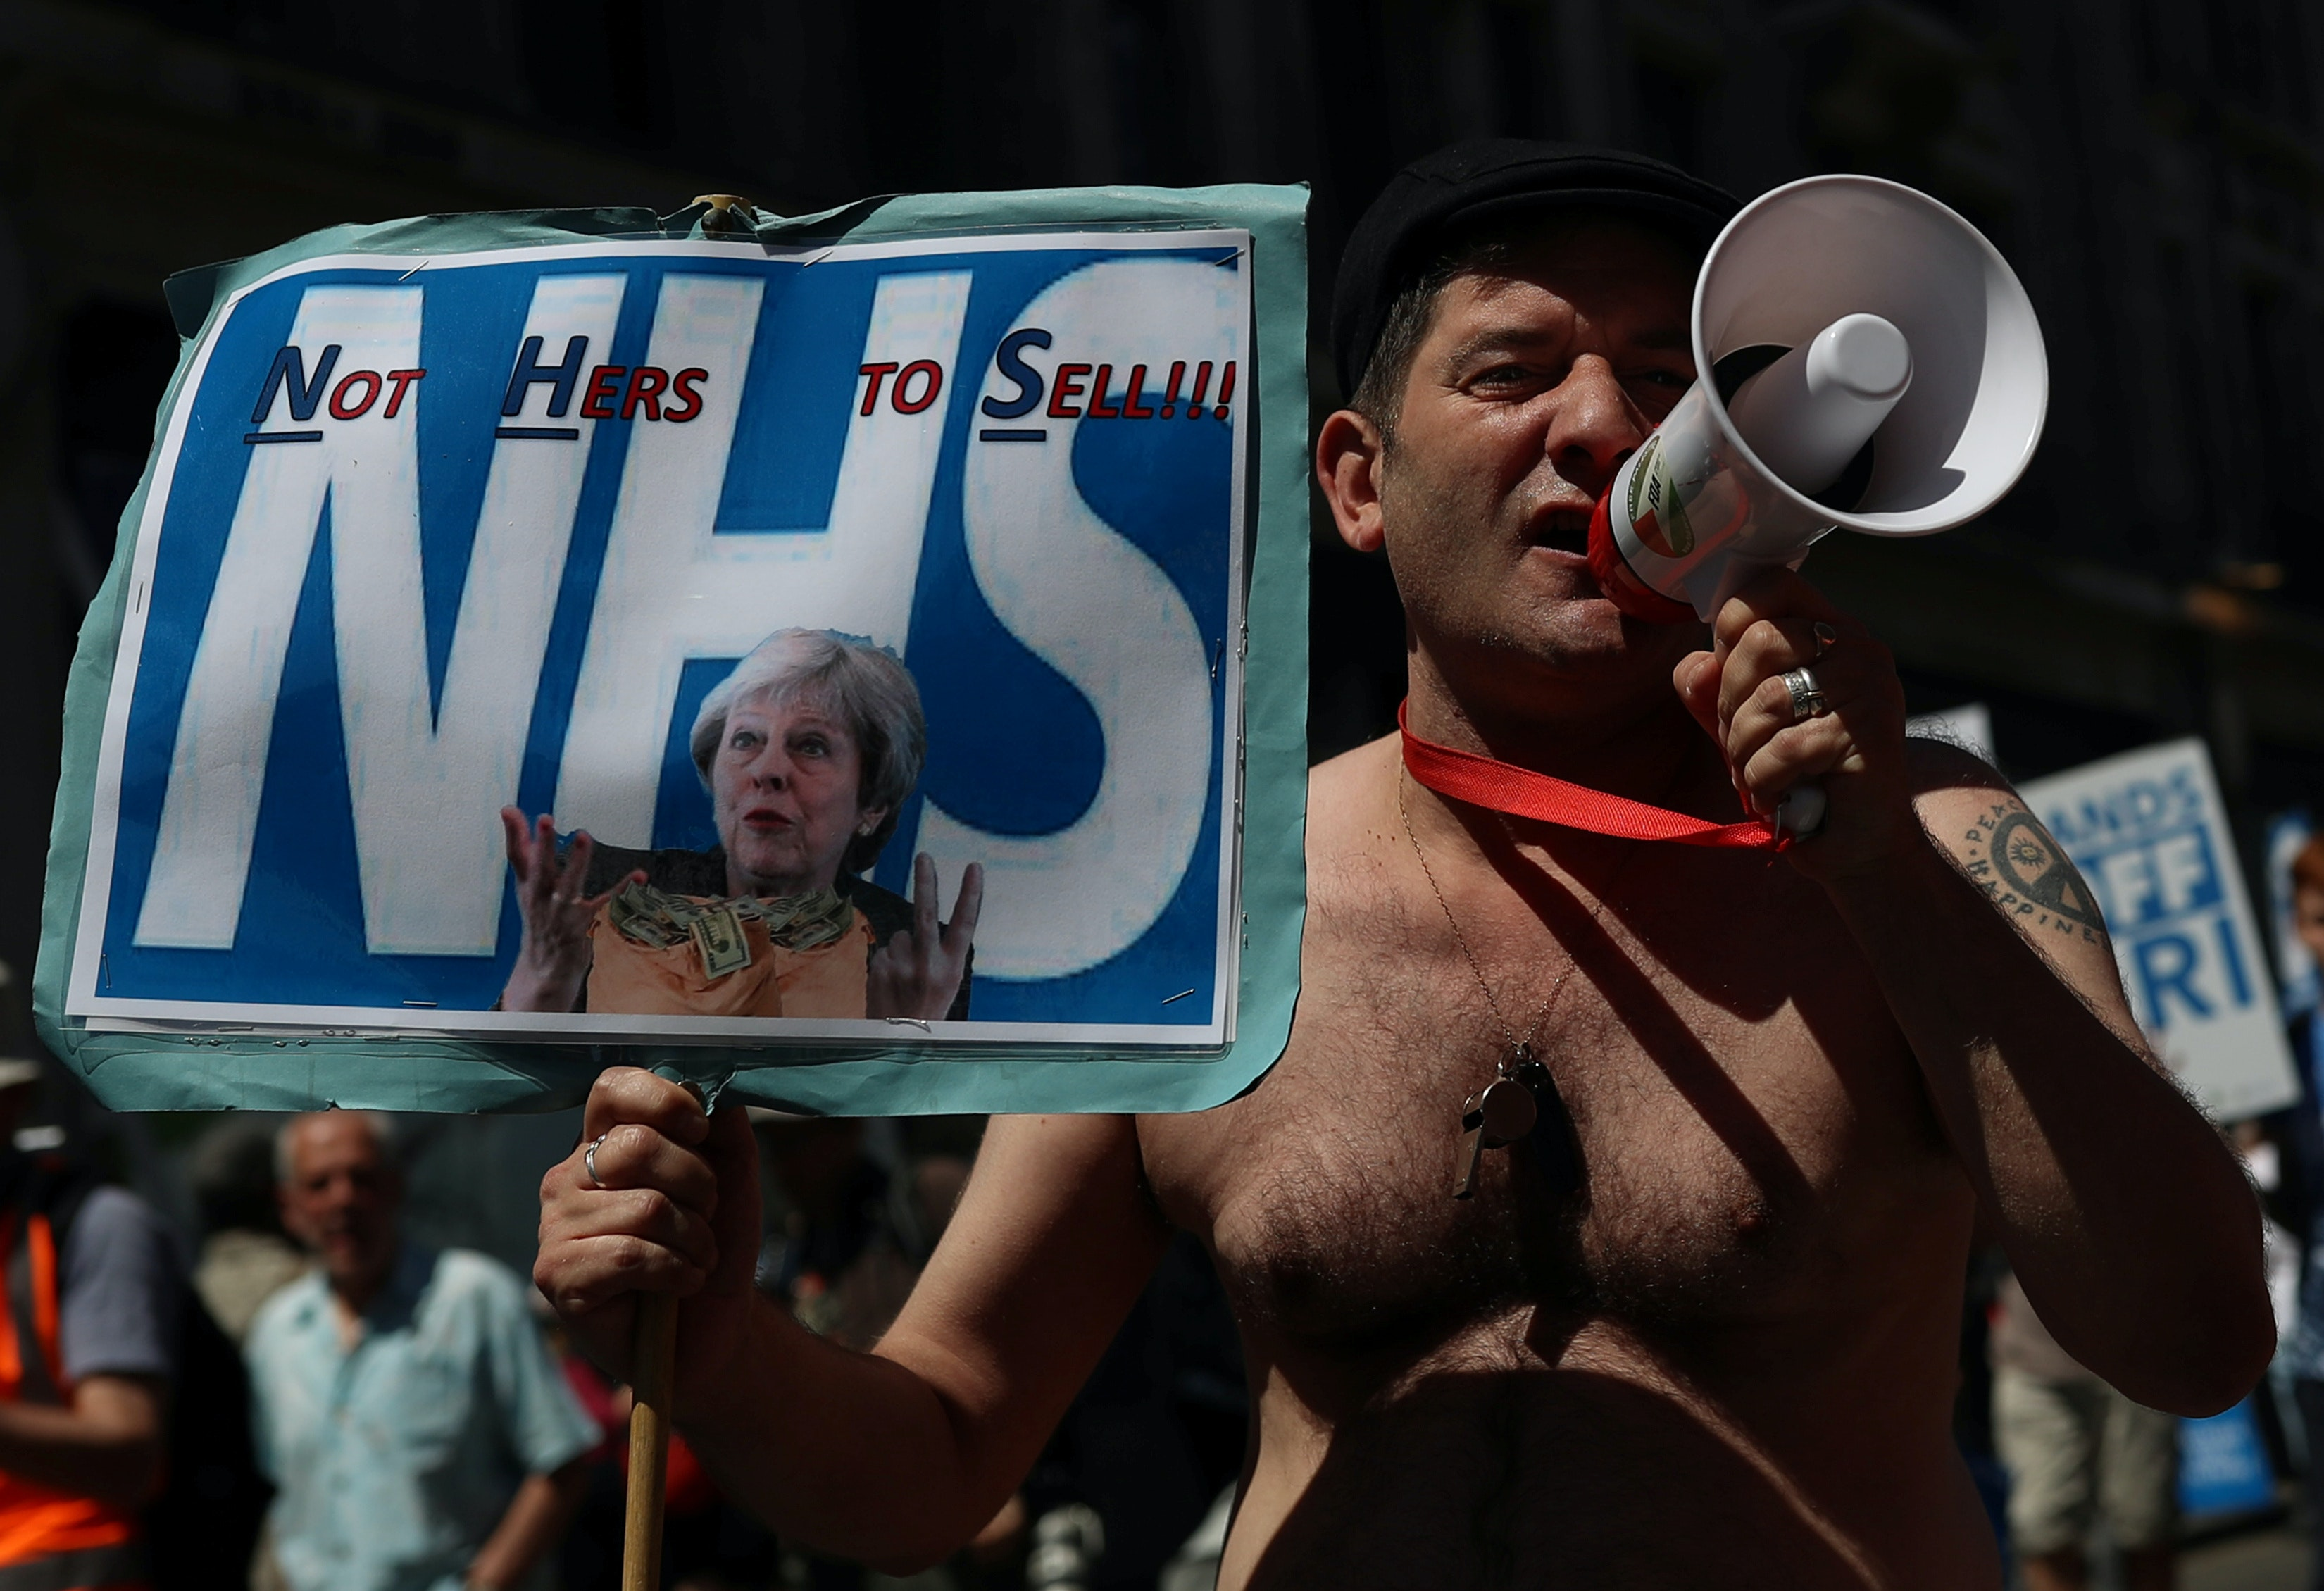 The US could have ended up with a British-style health care system: Here is why it didn't